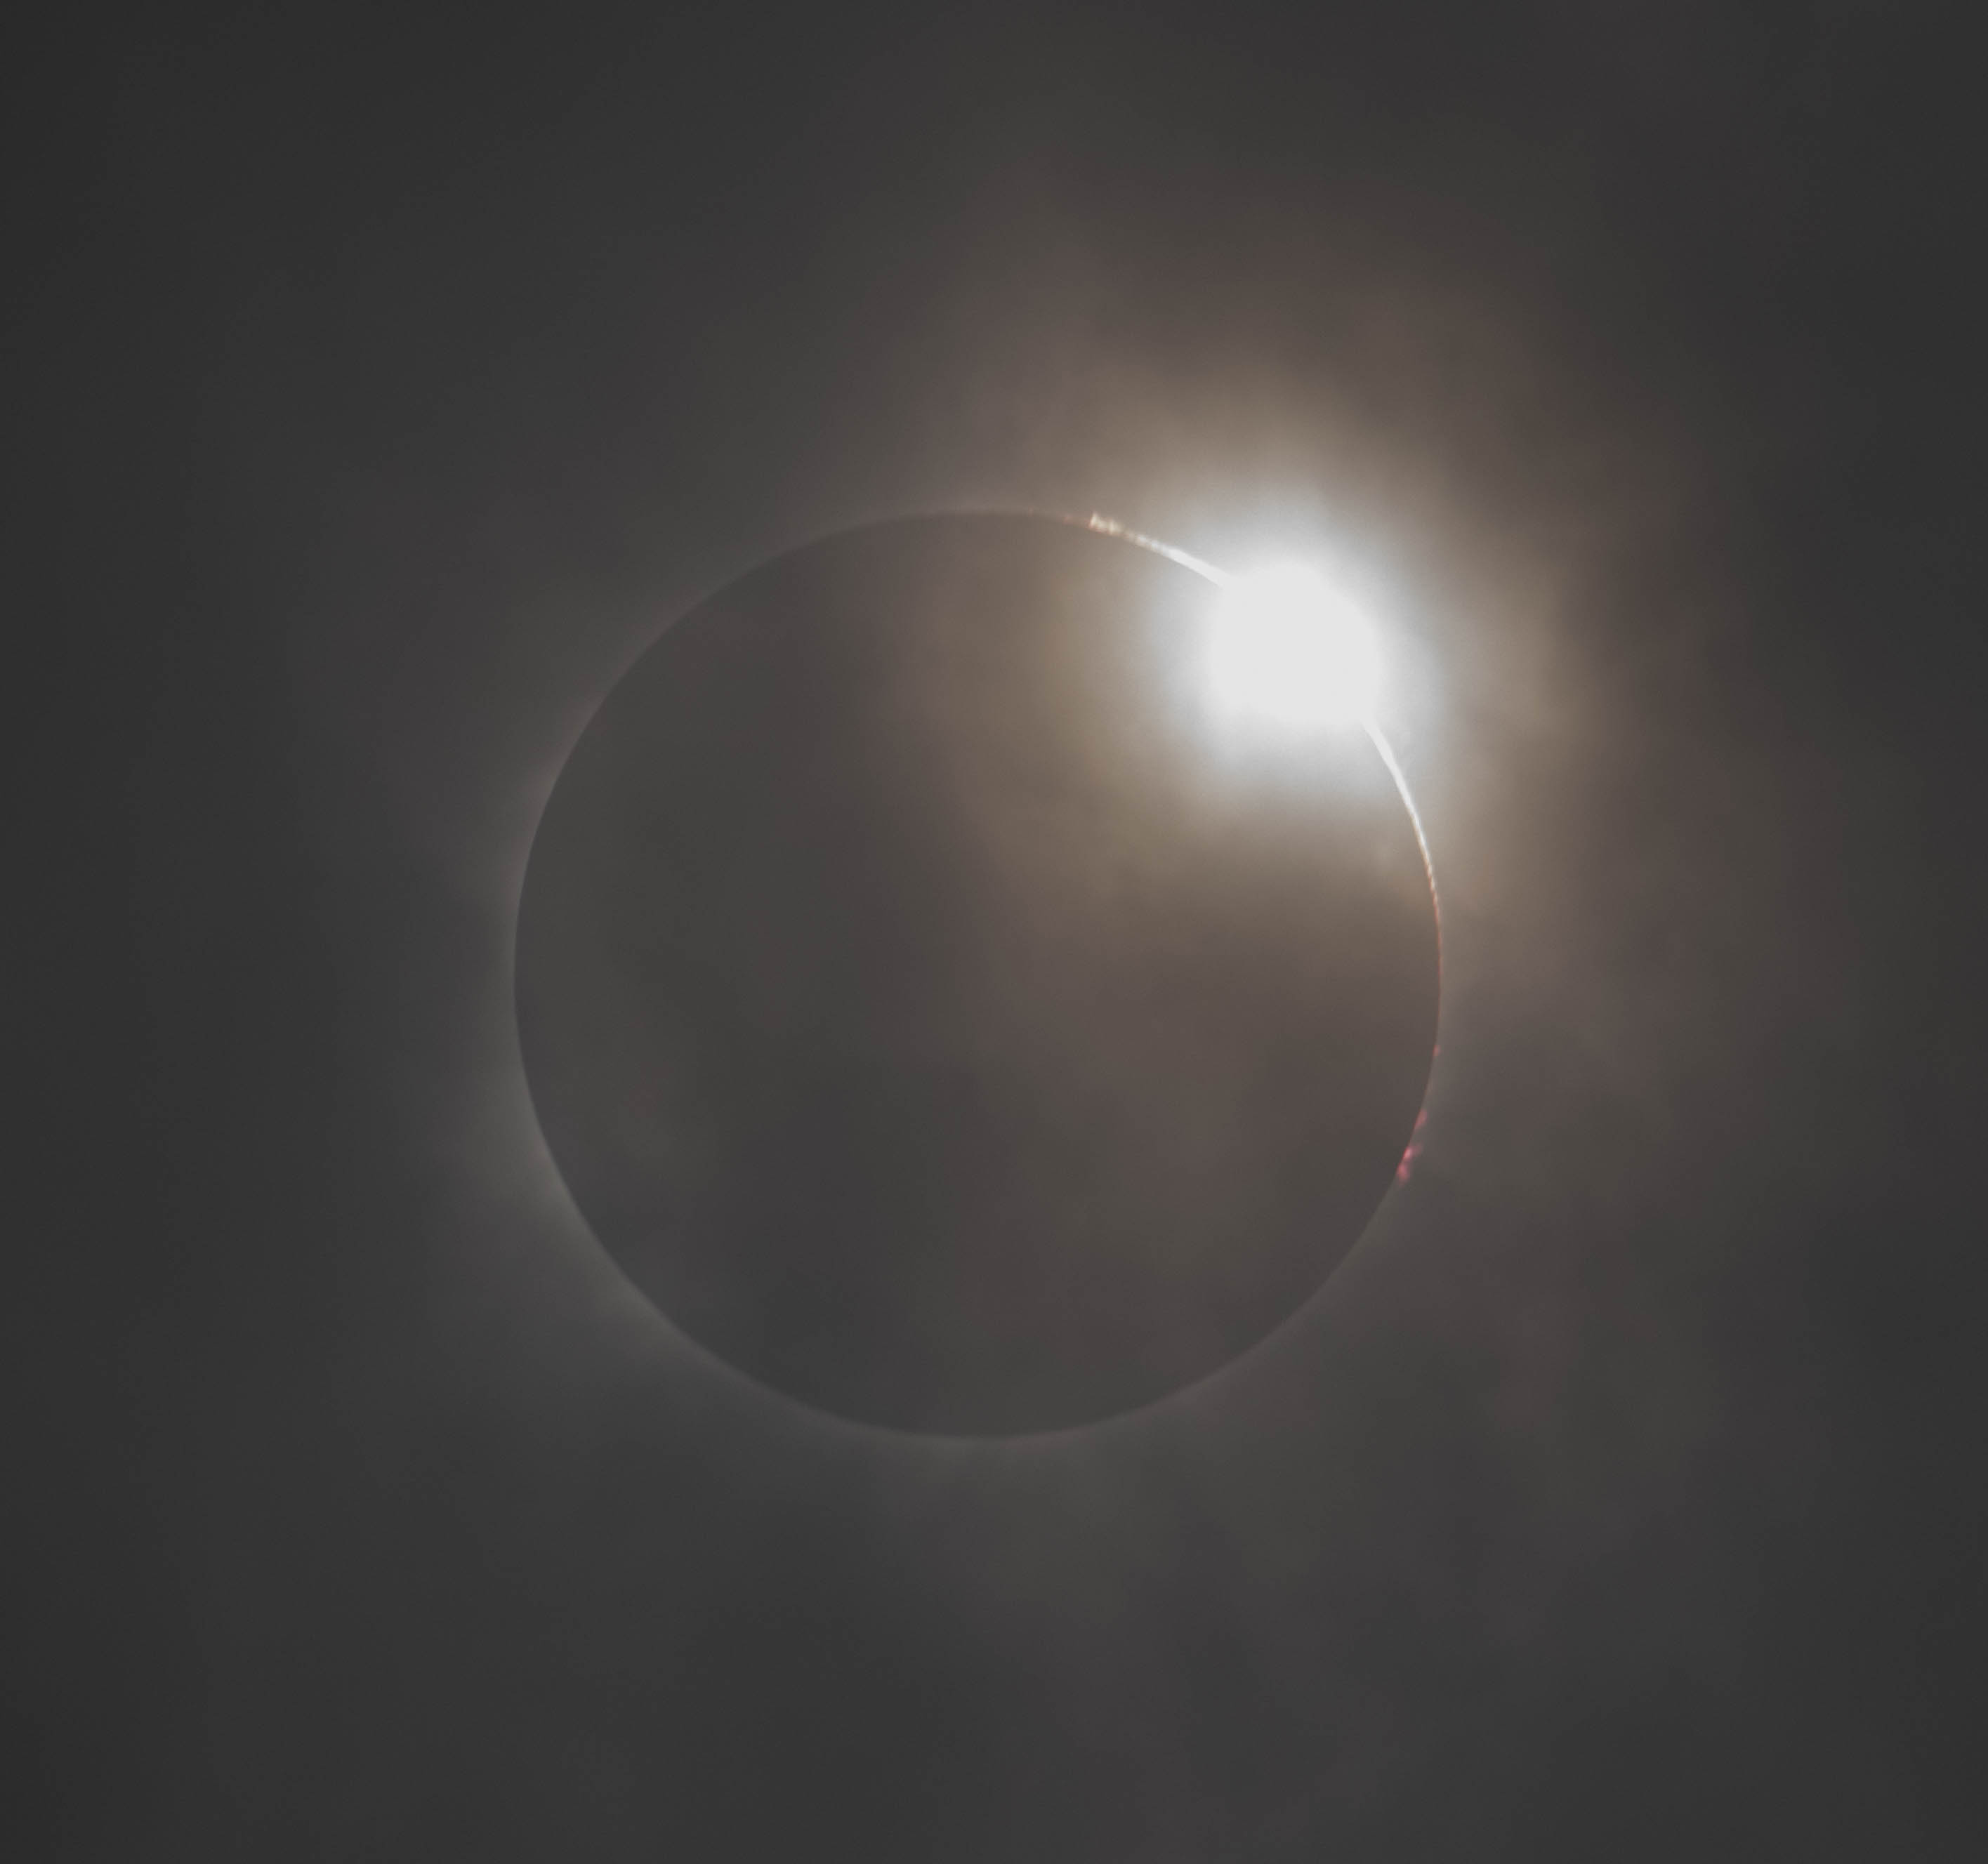 Eclipse-14.jpg